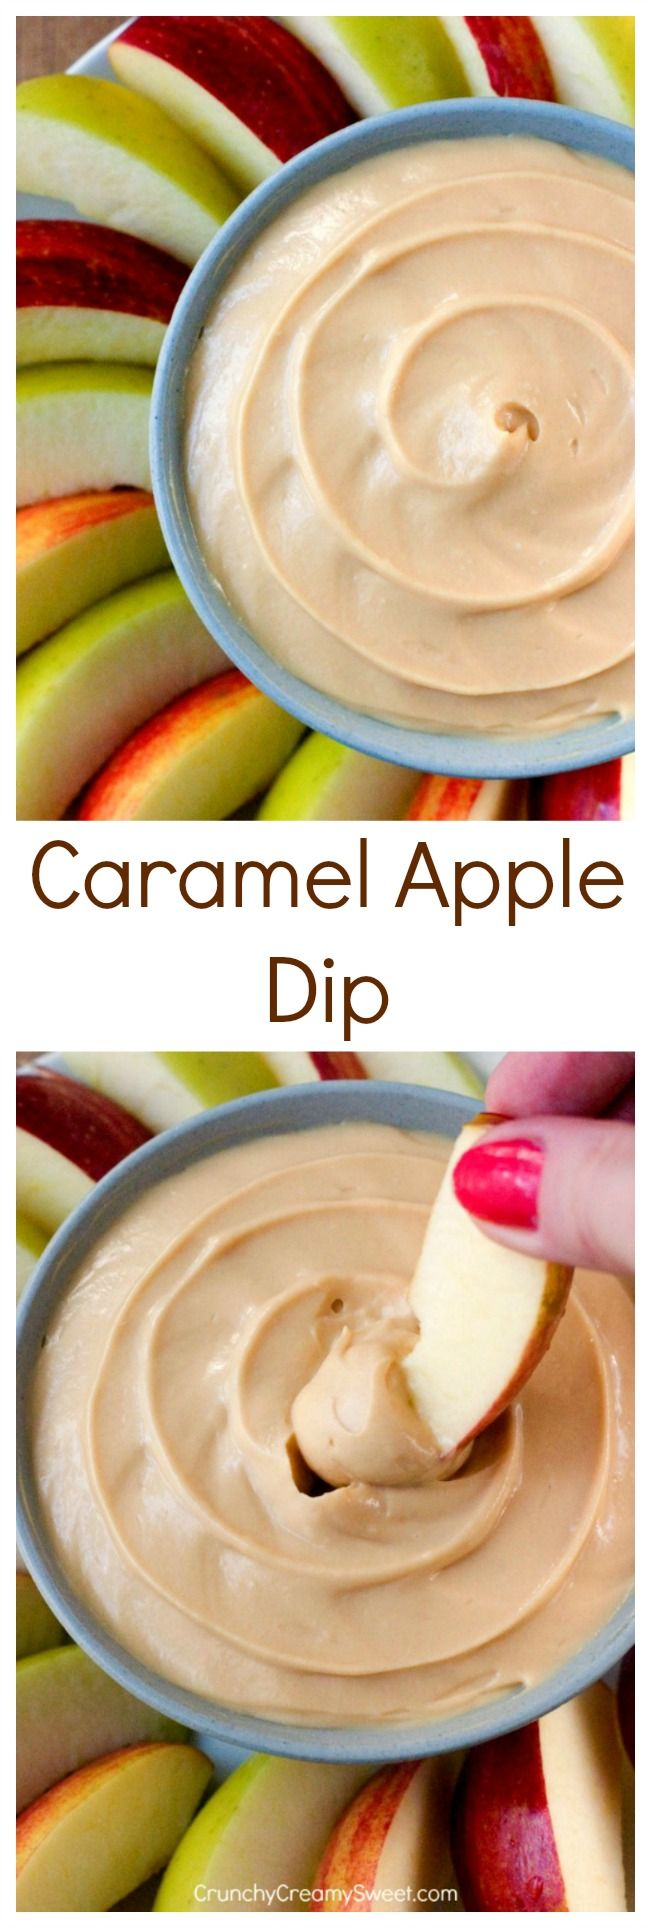 Caramel Apple Dip – this 2-ingredient dip will quickly become your guilty pleasure. It's easy and addicting! Whip it up in just minutes and enjoy with apple slices!